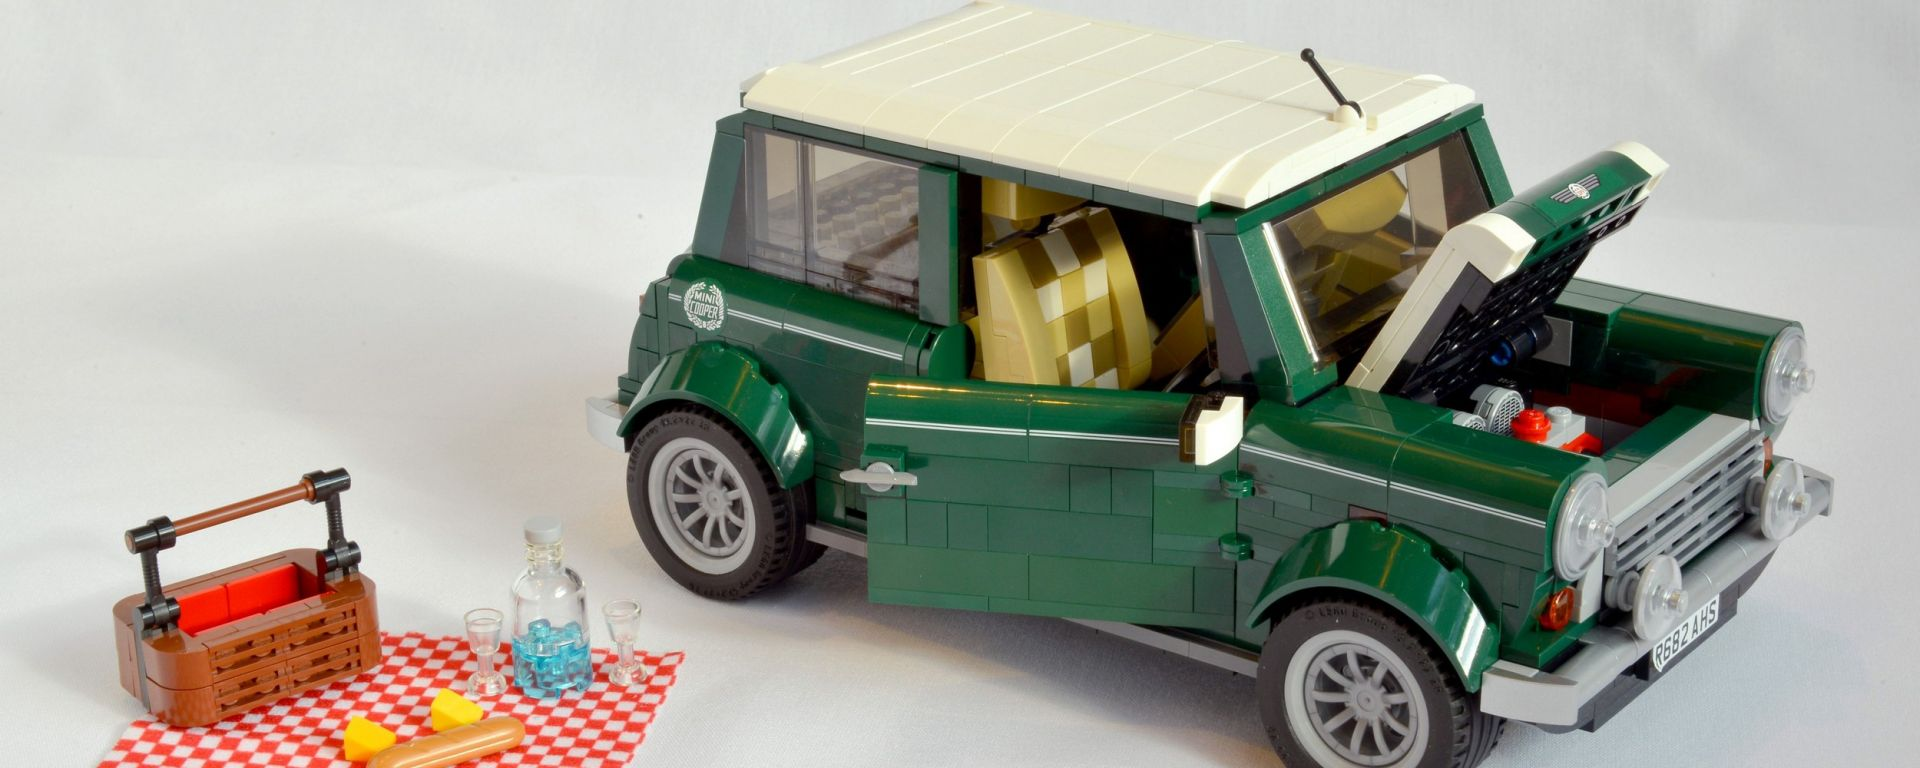 toys mini cooper by lego creator expert motorbox. Black Bedroom Furniture Sets. Home Design Ideas